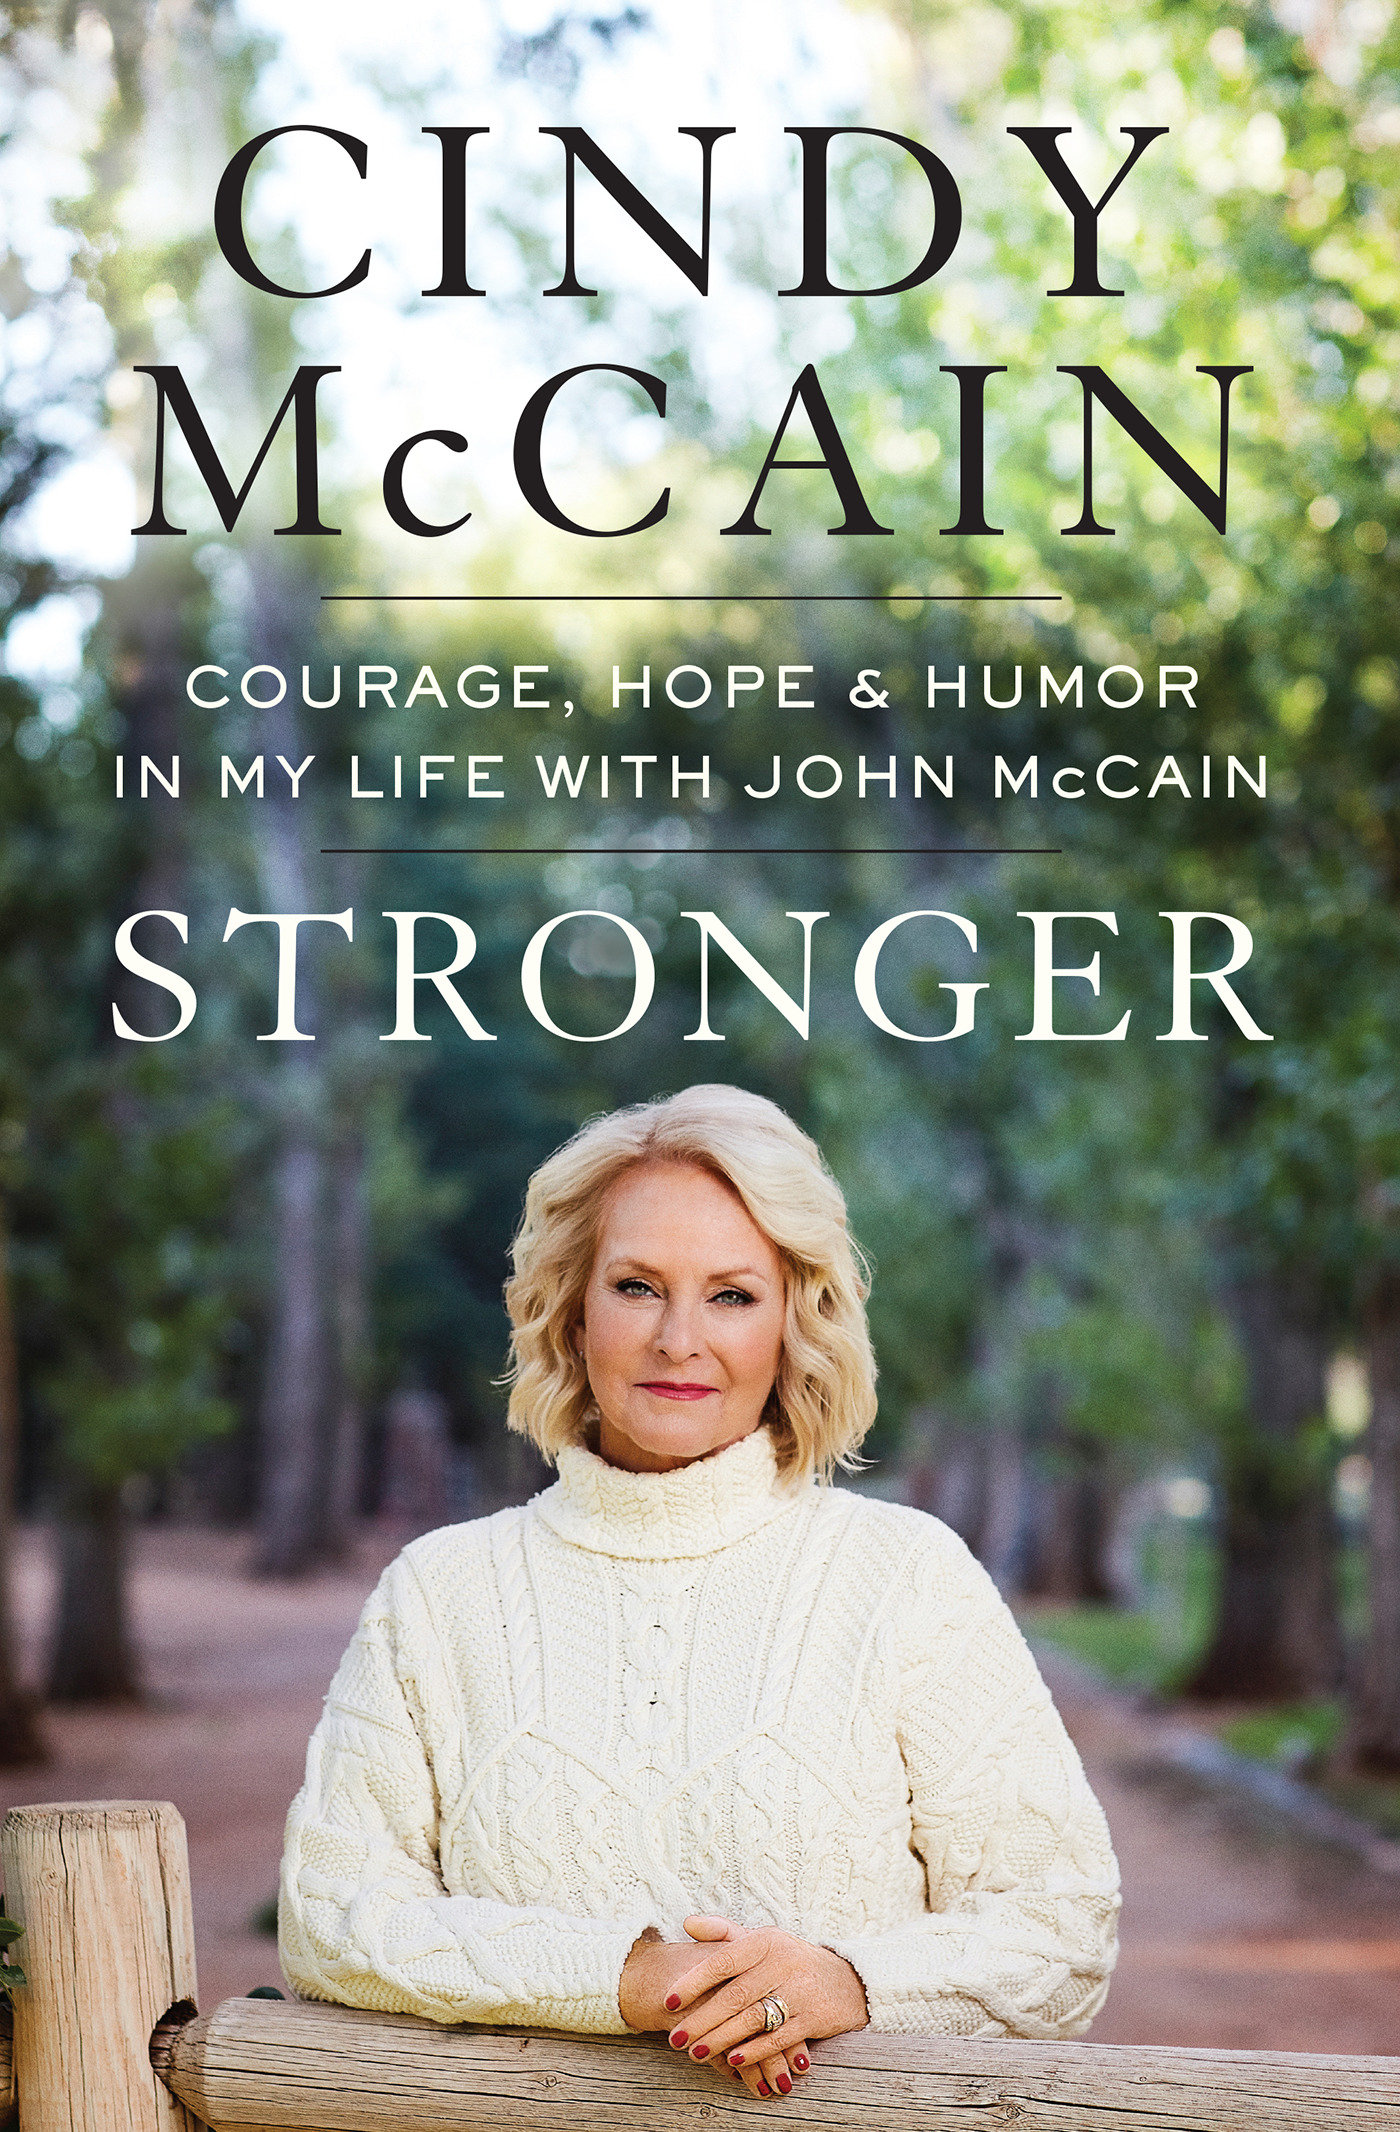 Stronger Courage, Hope, and Humor in My Life with John McCain